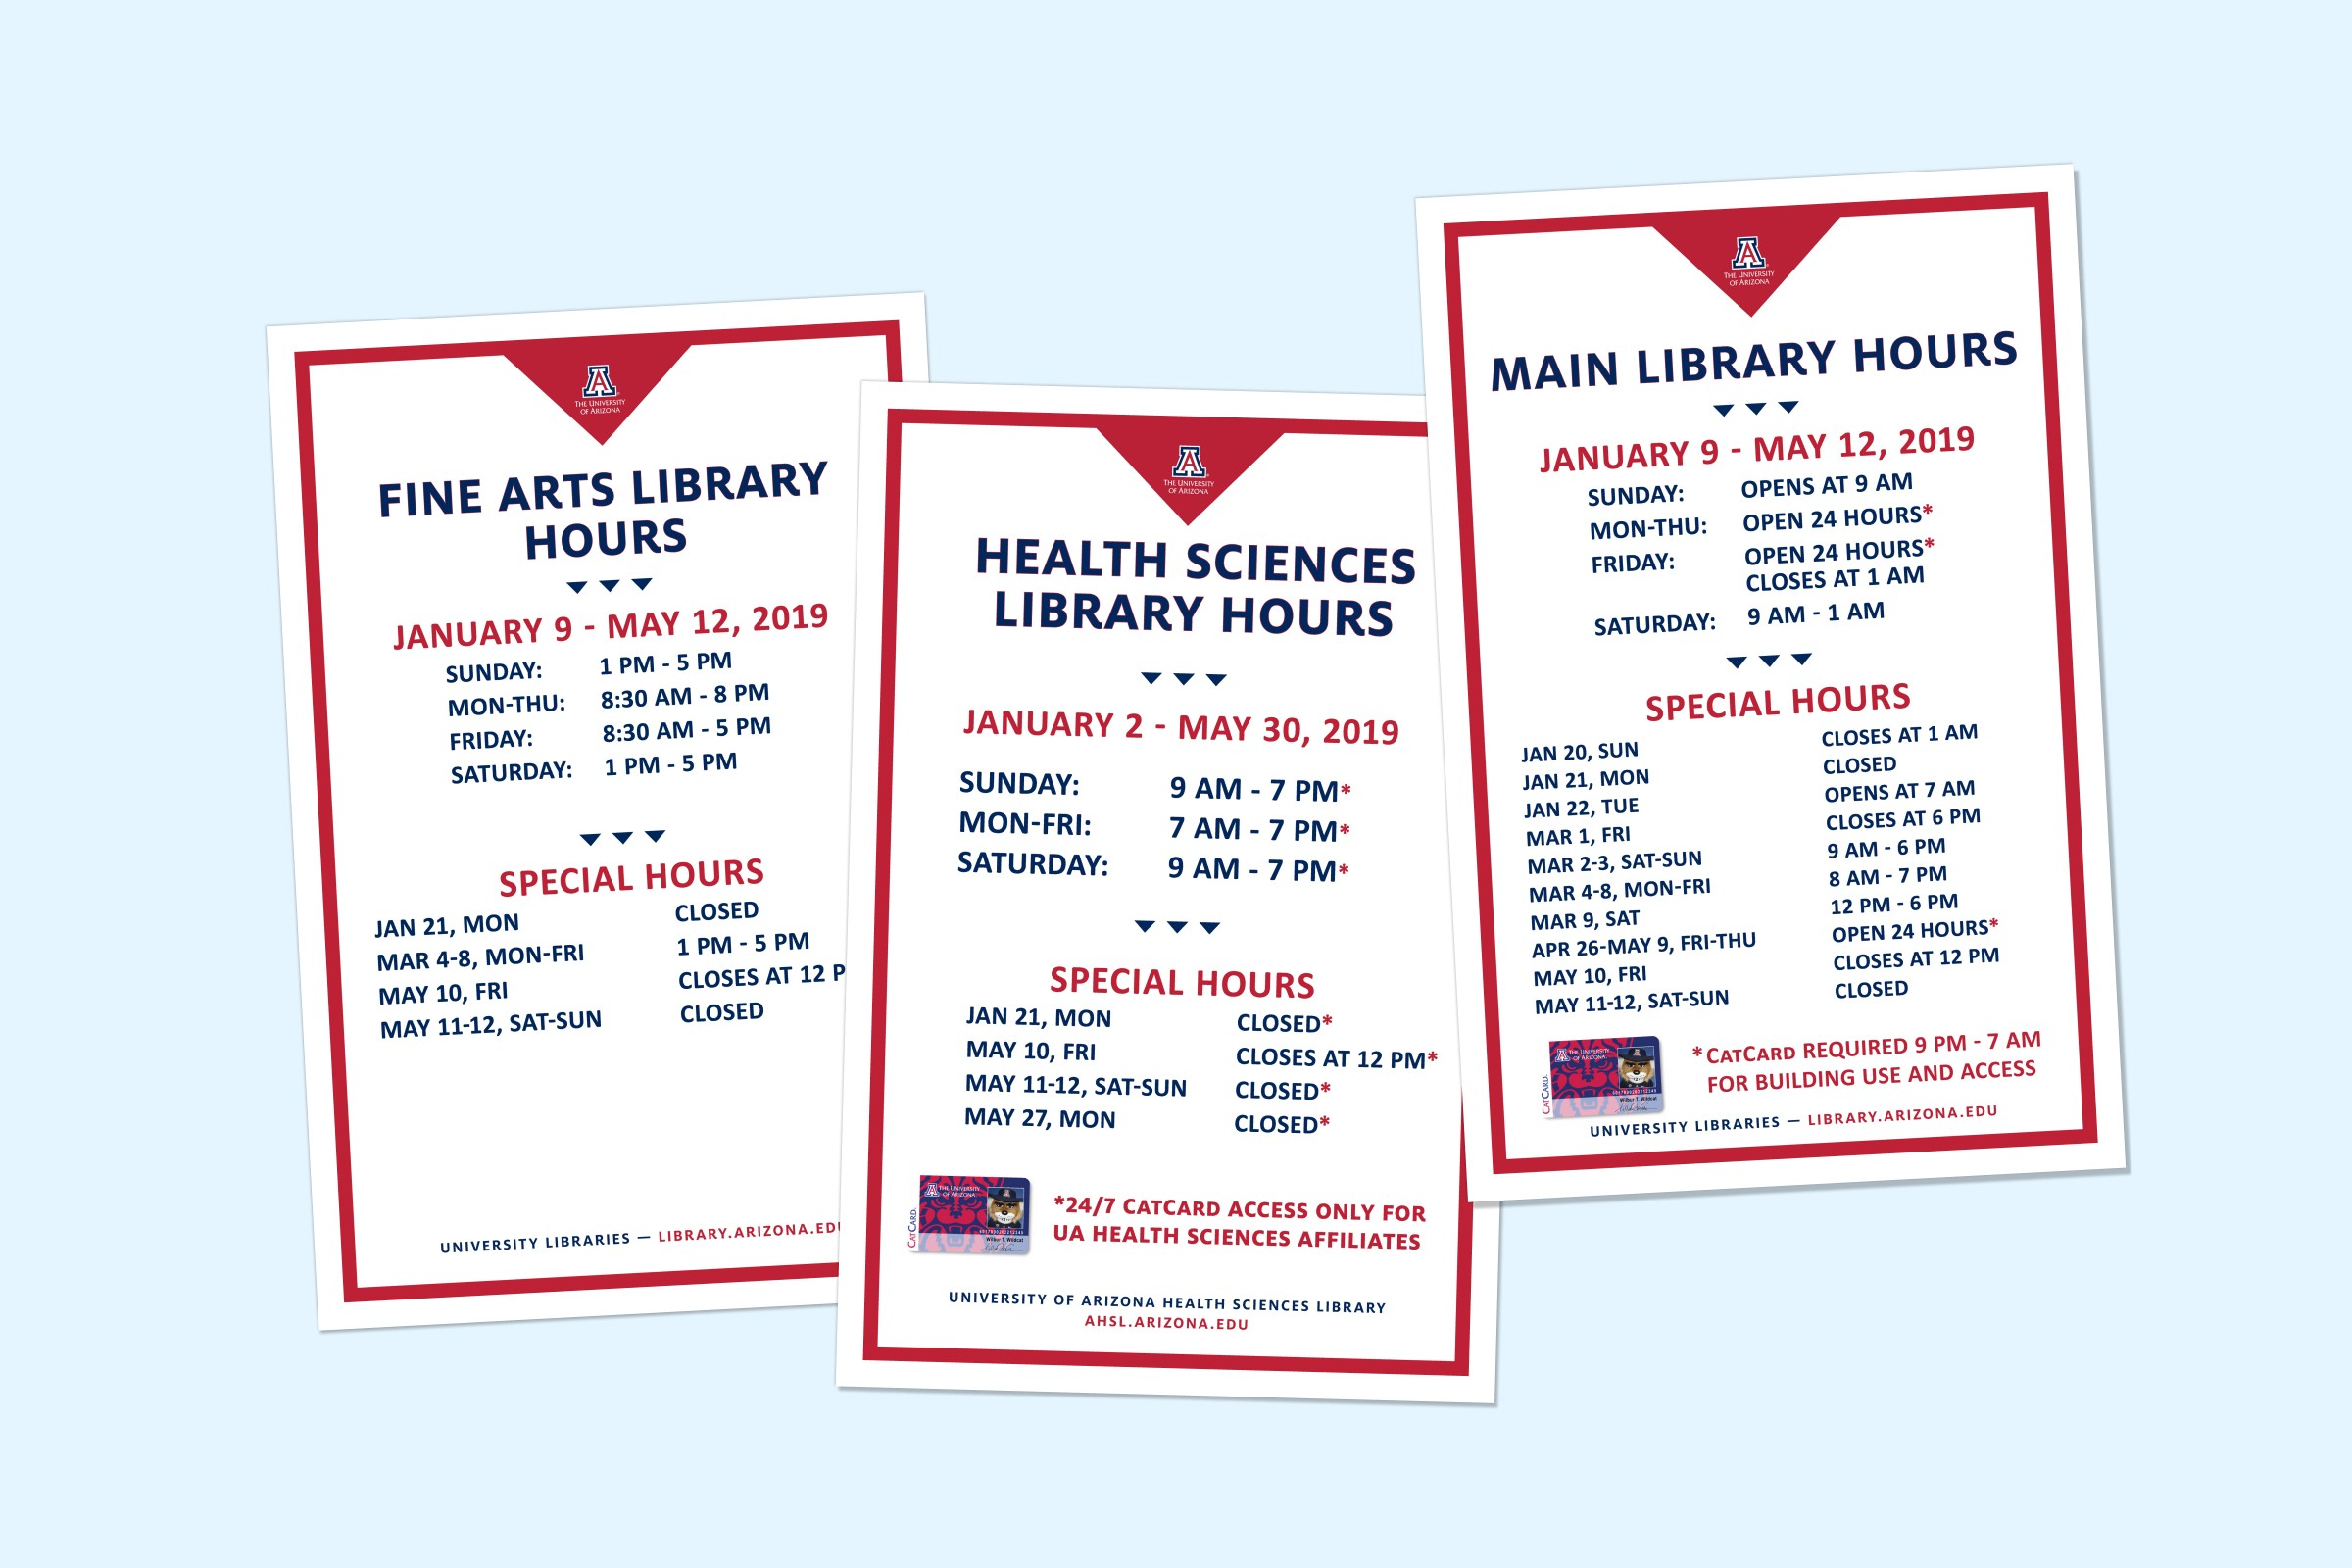 Hours signs used on the library doors